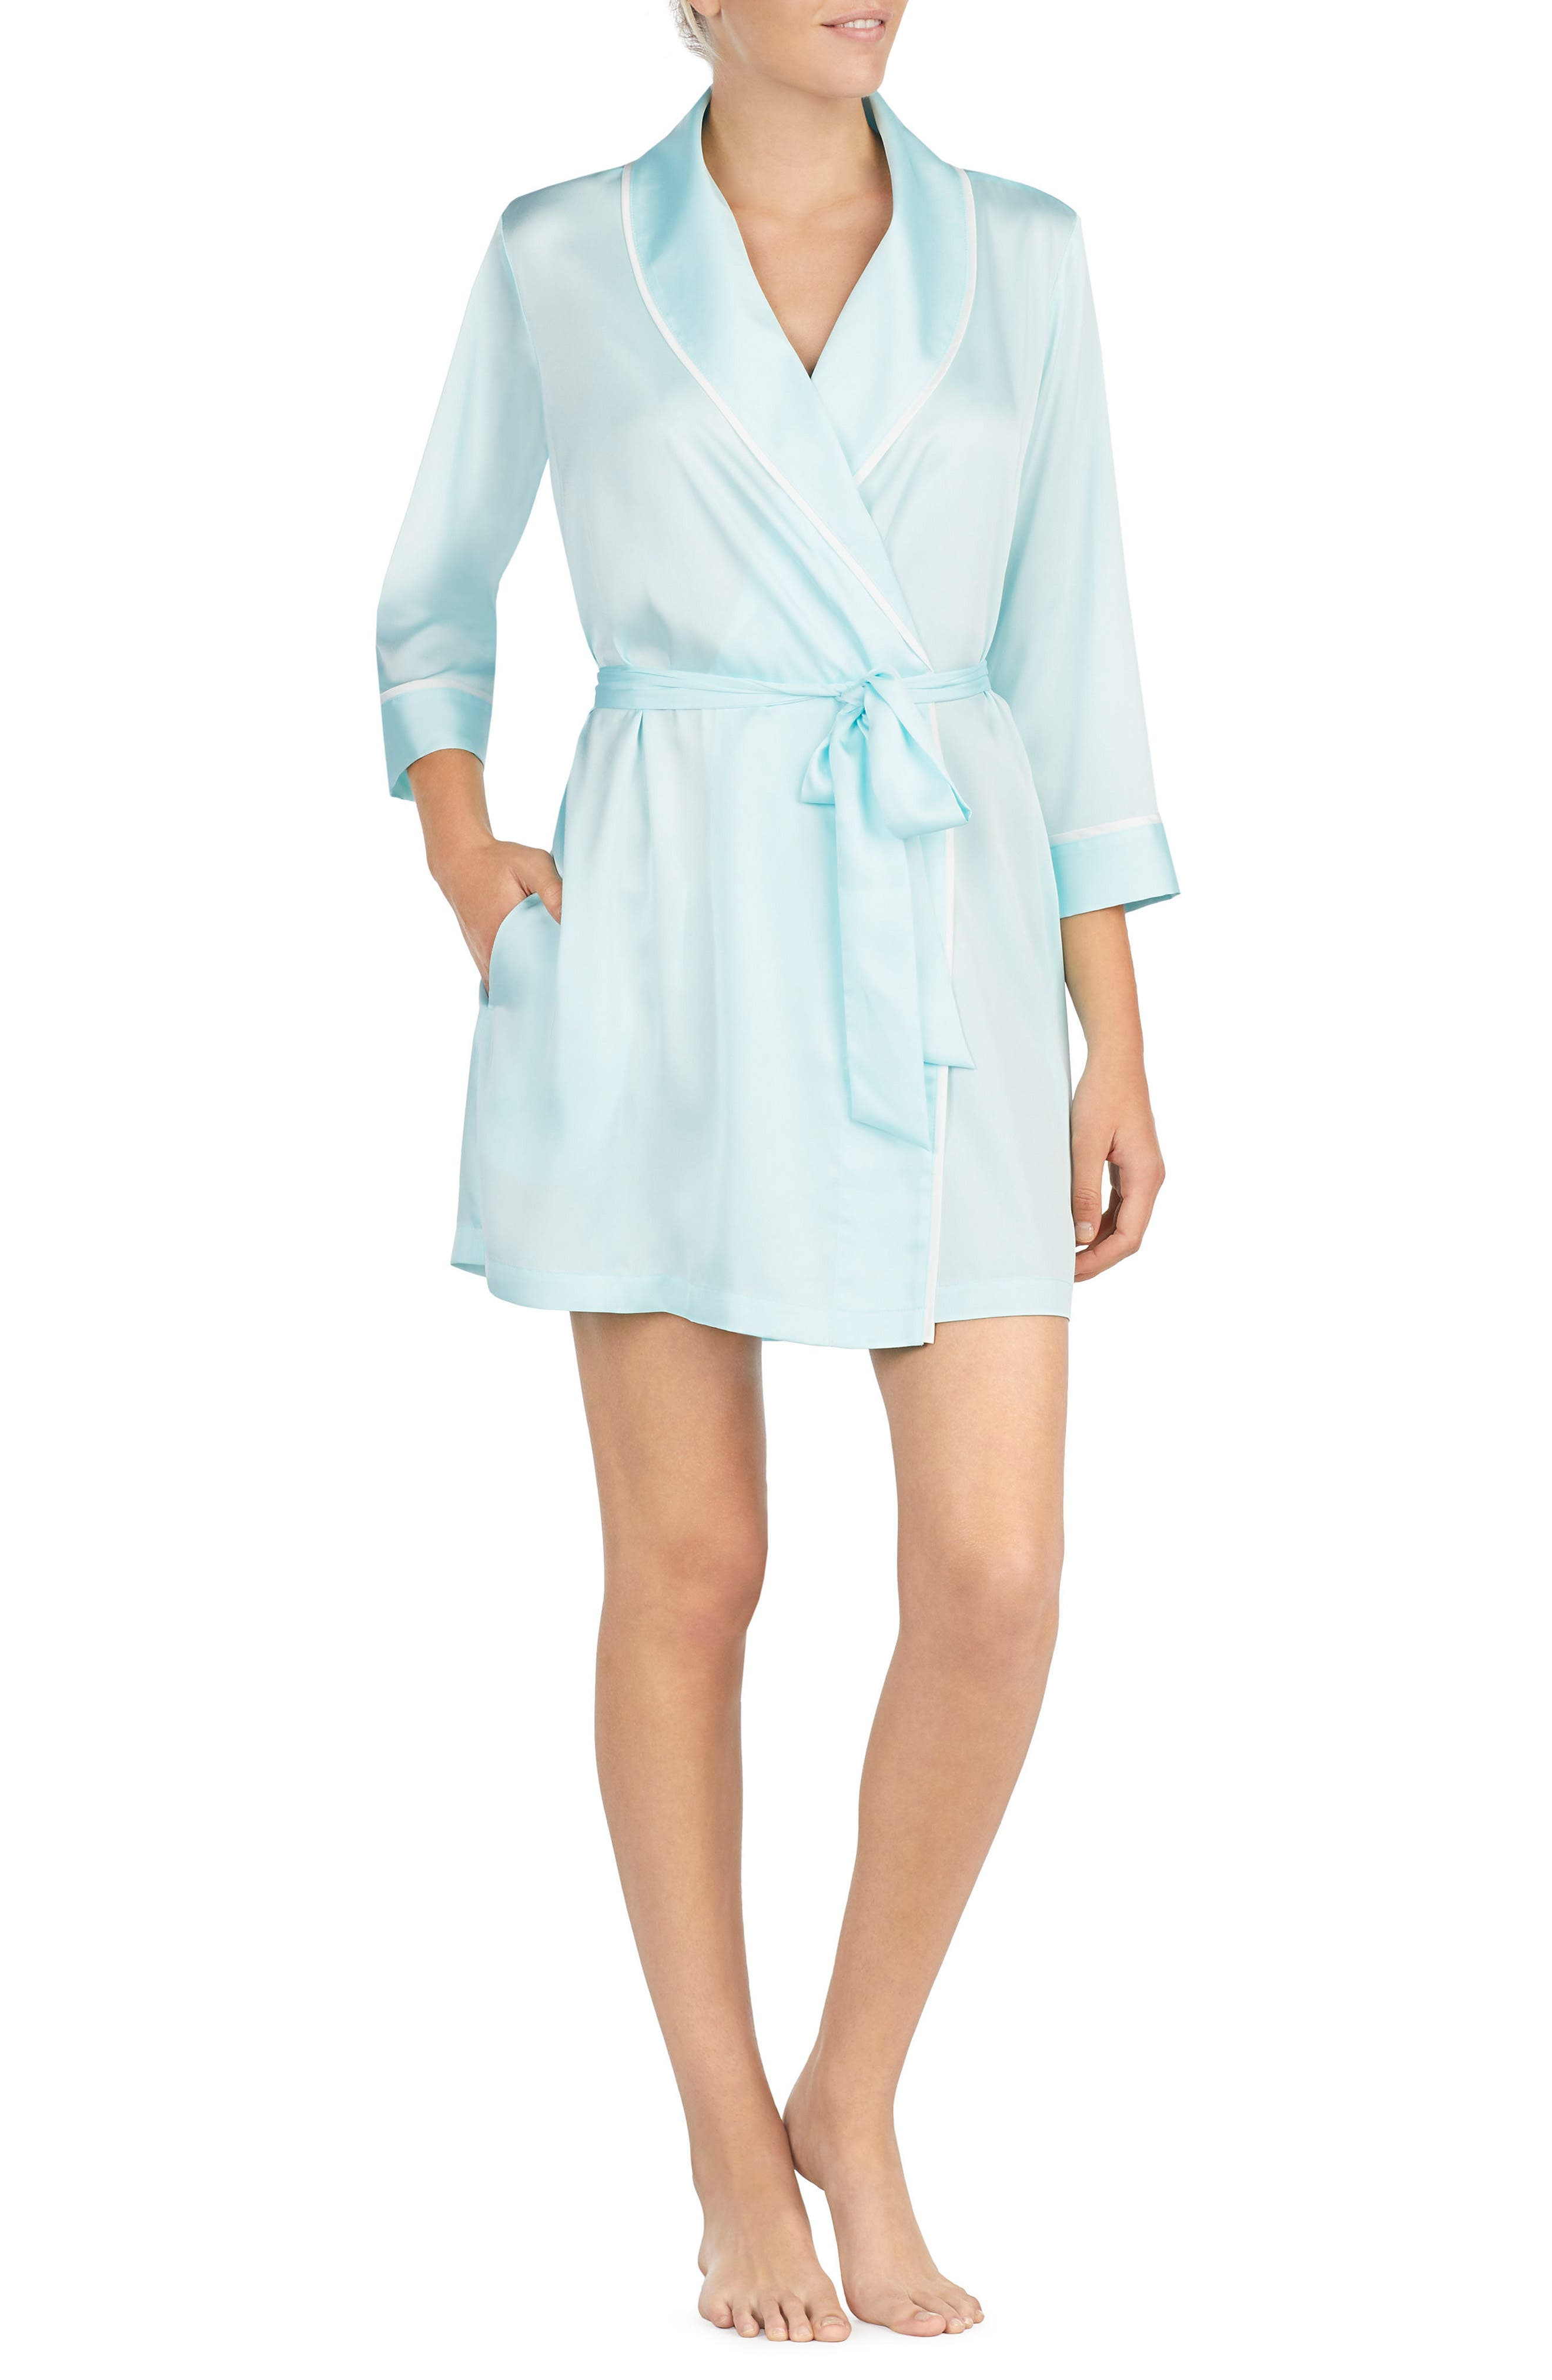 happily ever after charmeuse short robe,                         Main,                         color, 405